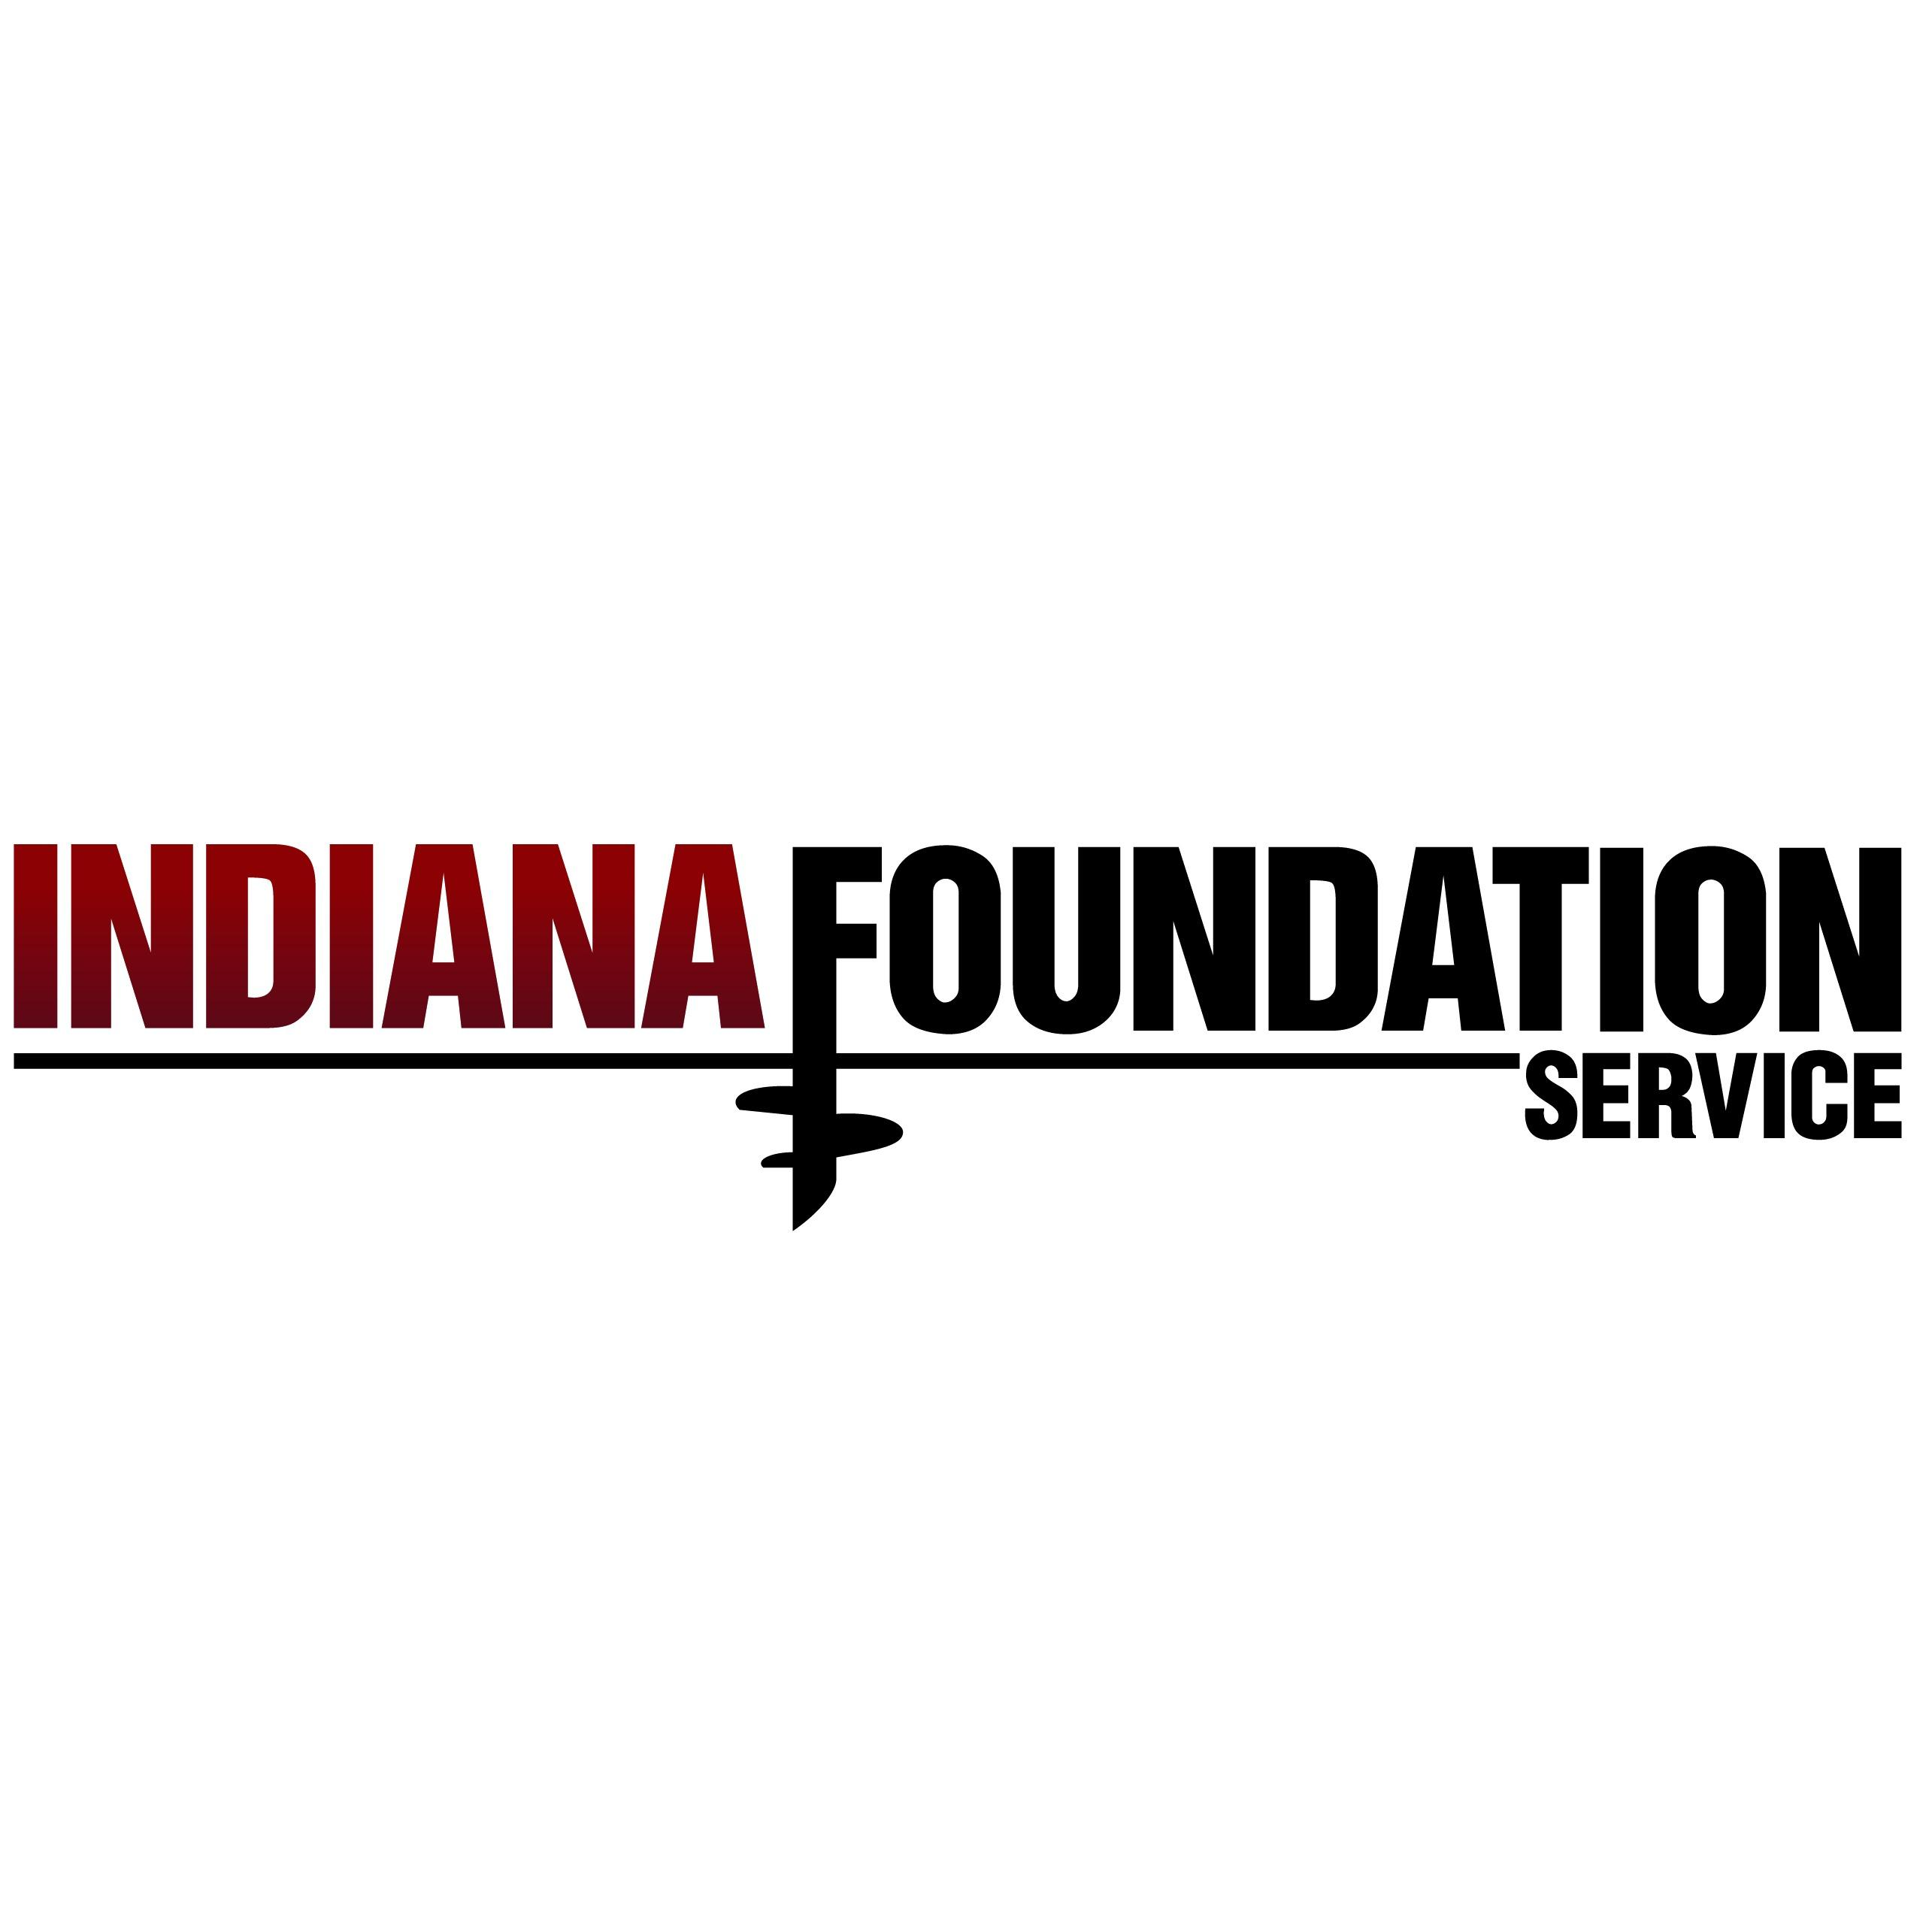 Indiana Foundation Service Whiteland Indiana In